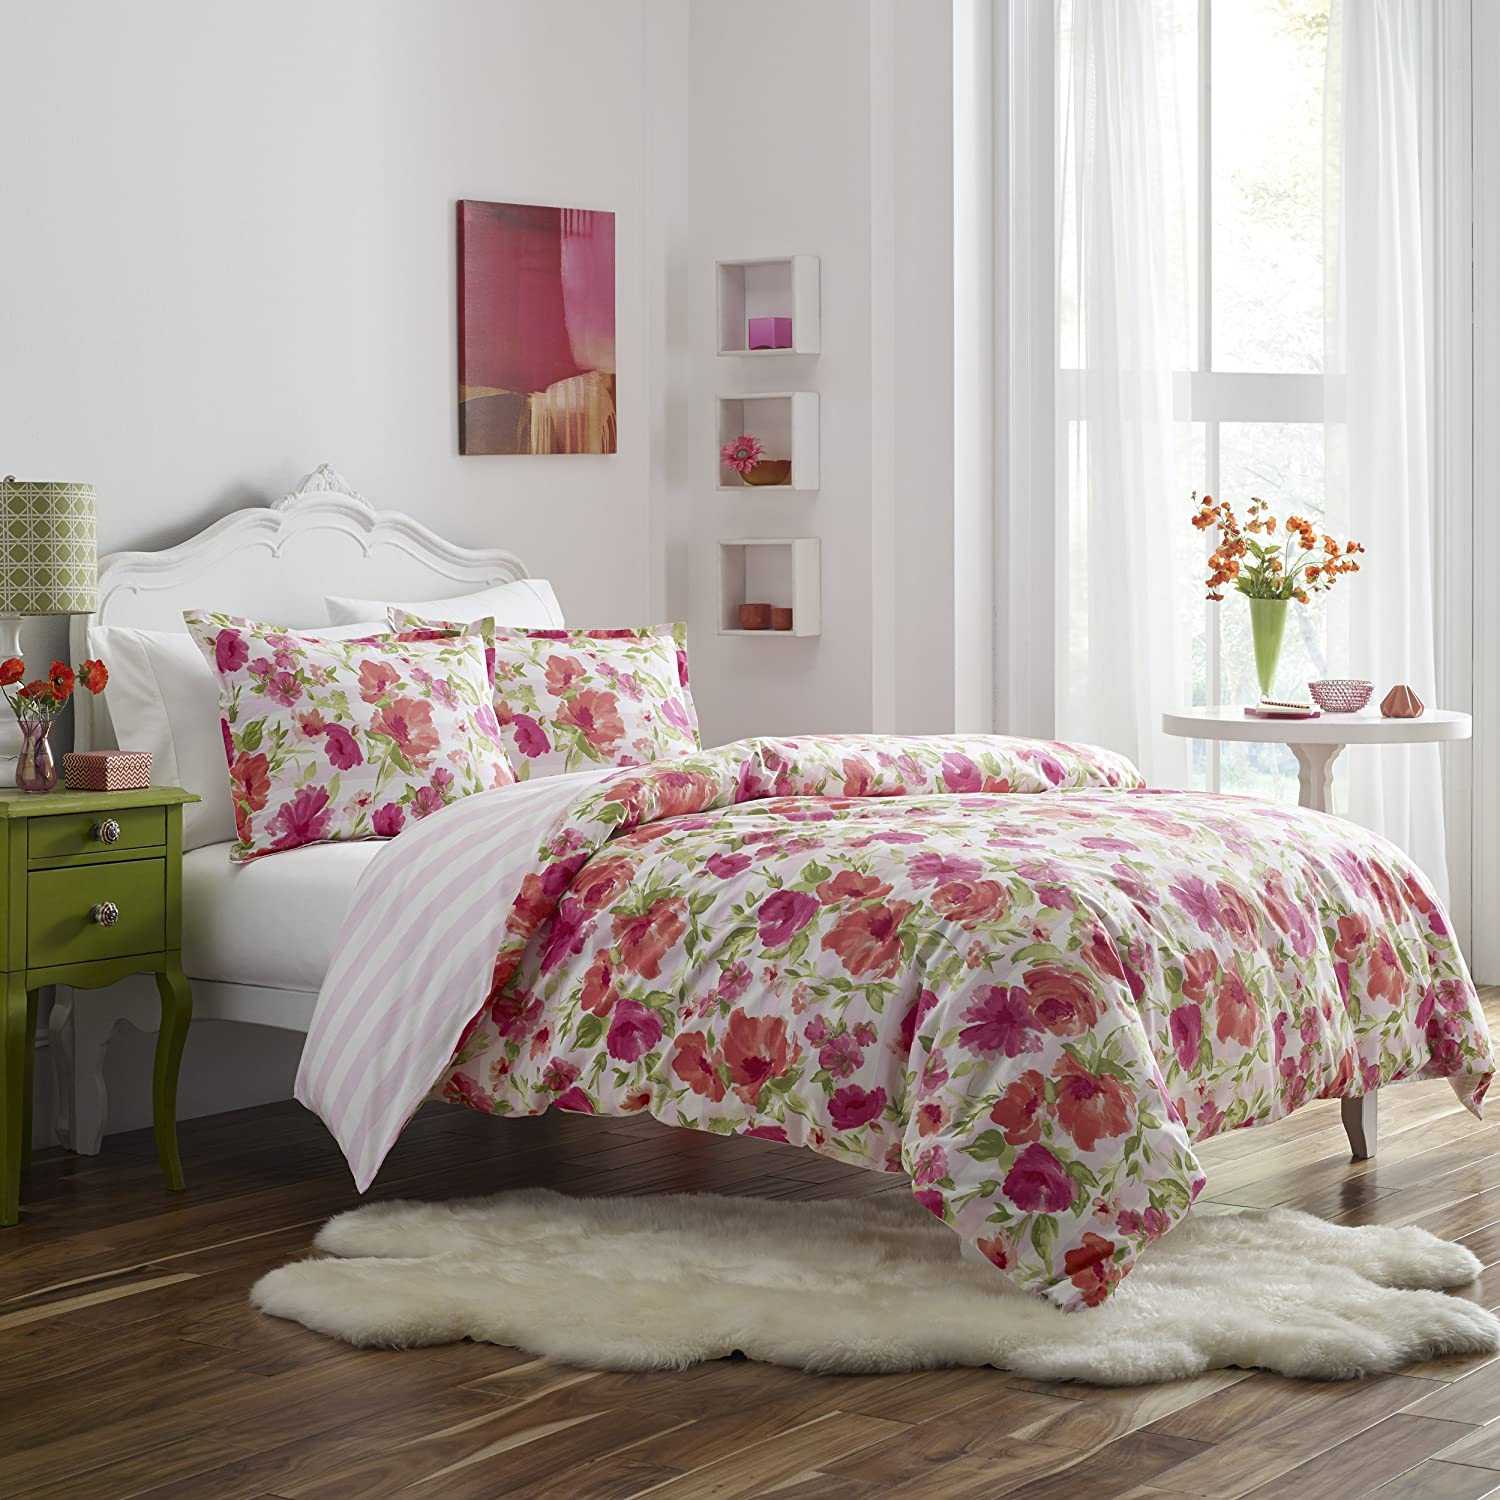 Poppy & Fritz Floral Buffy Comforter Sham Set, Twin, Pink